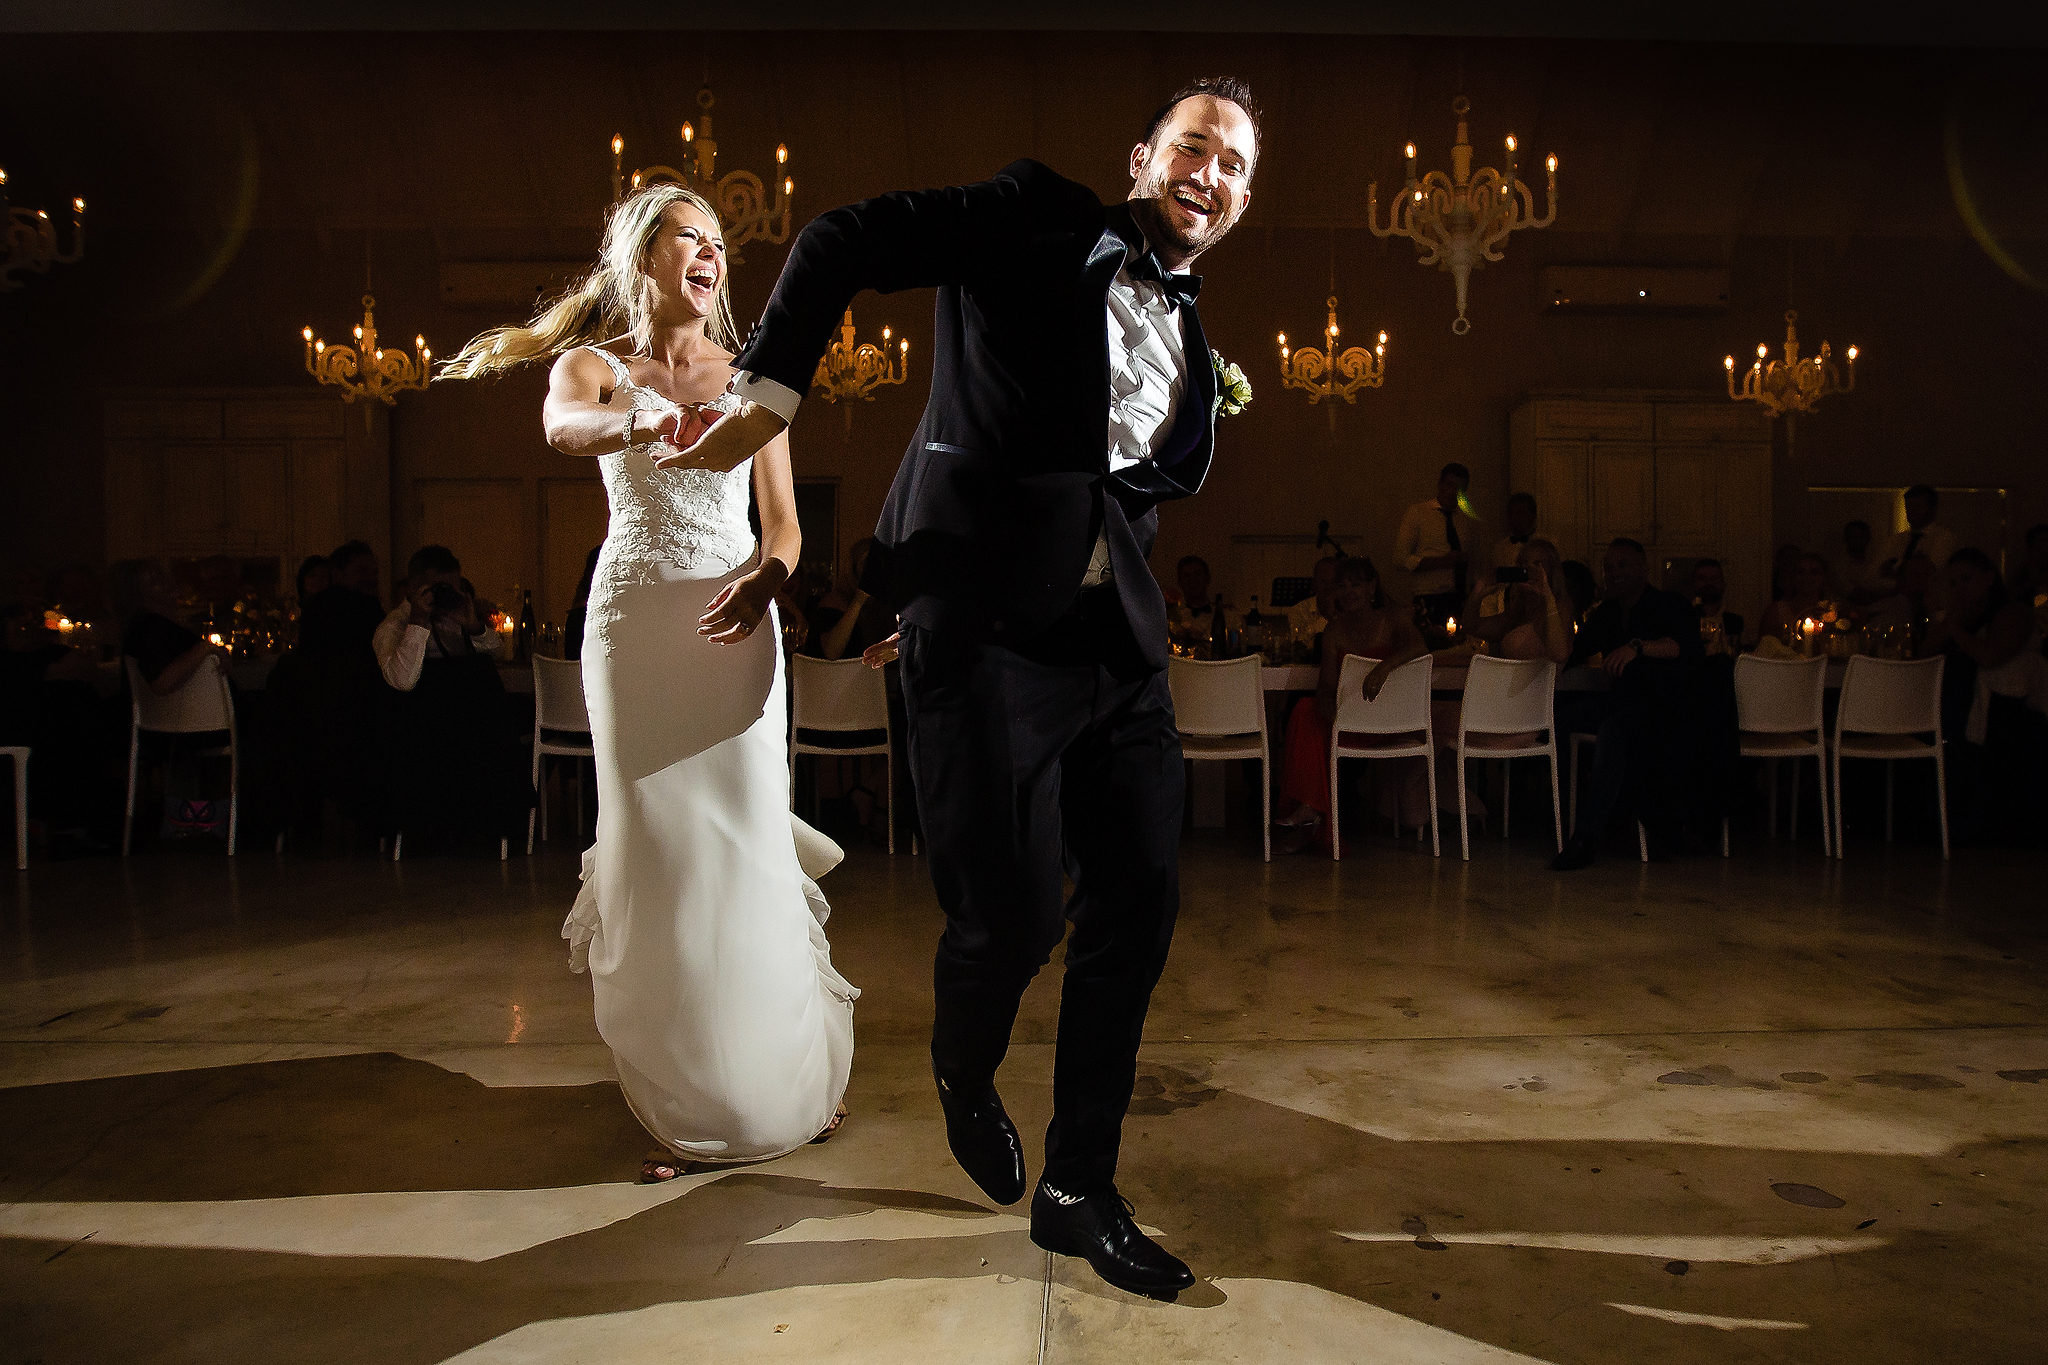 Bride and groom dance floor moves - photo by Ruan Redelinghuys Photography